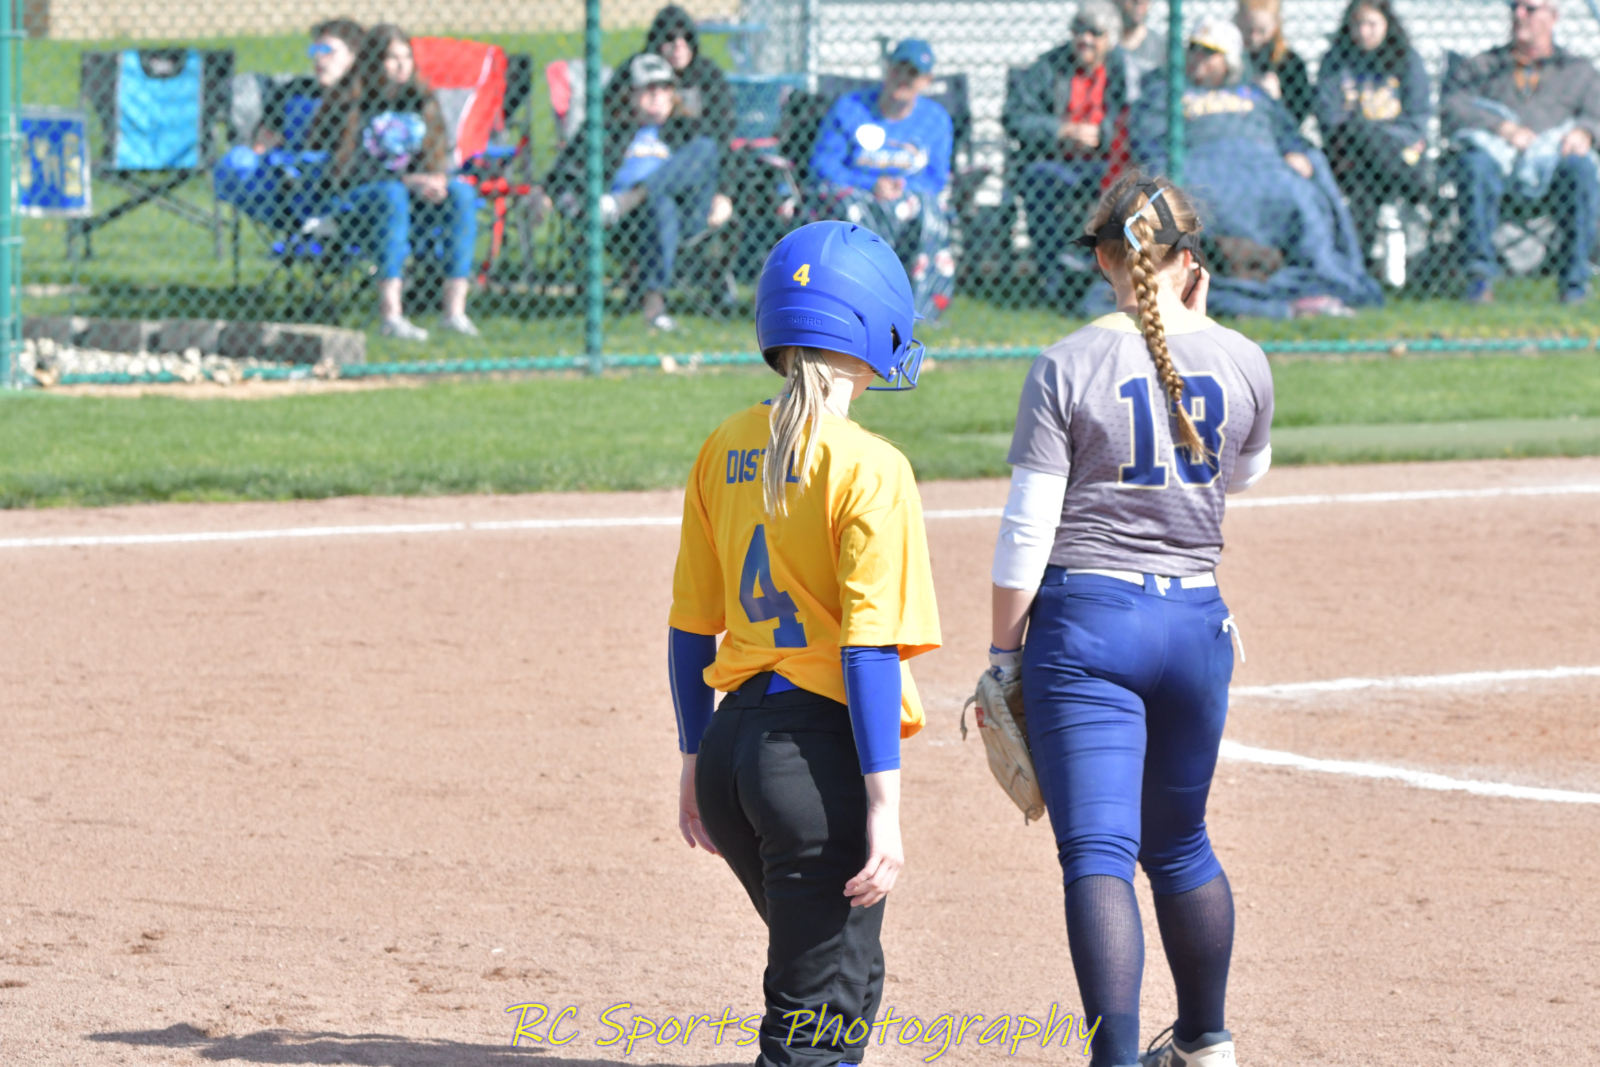 CHS Jayvee Softball game is cancelled for April 20, 2021.